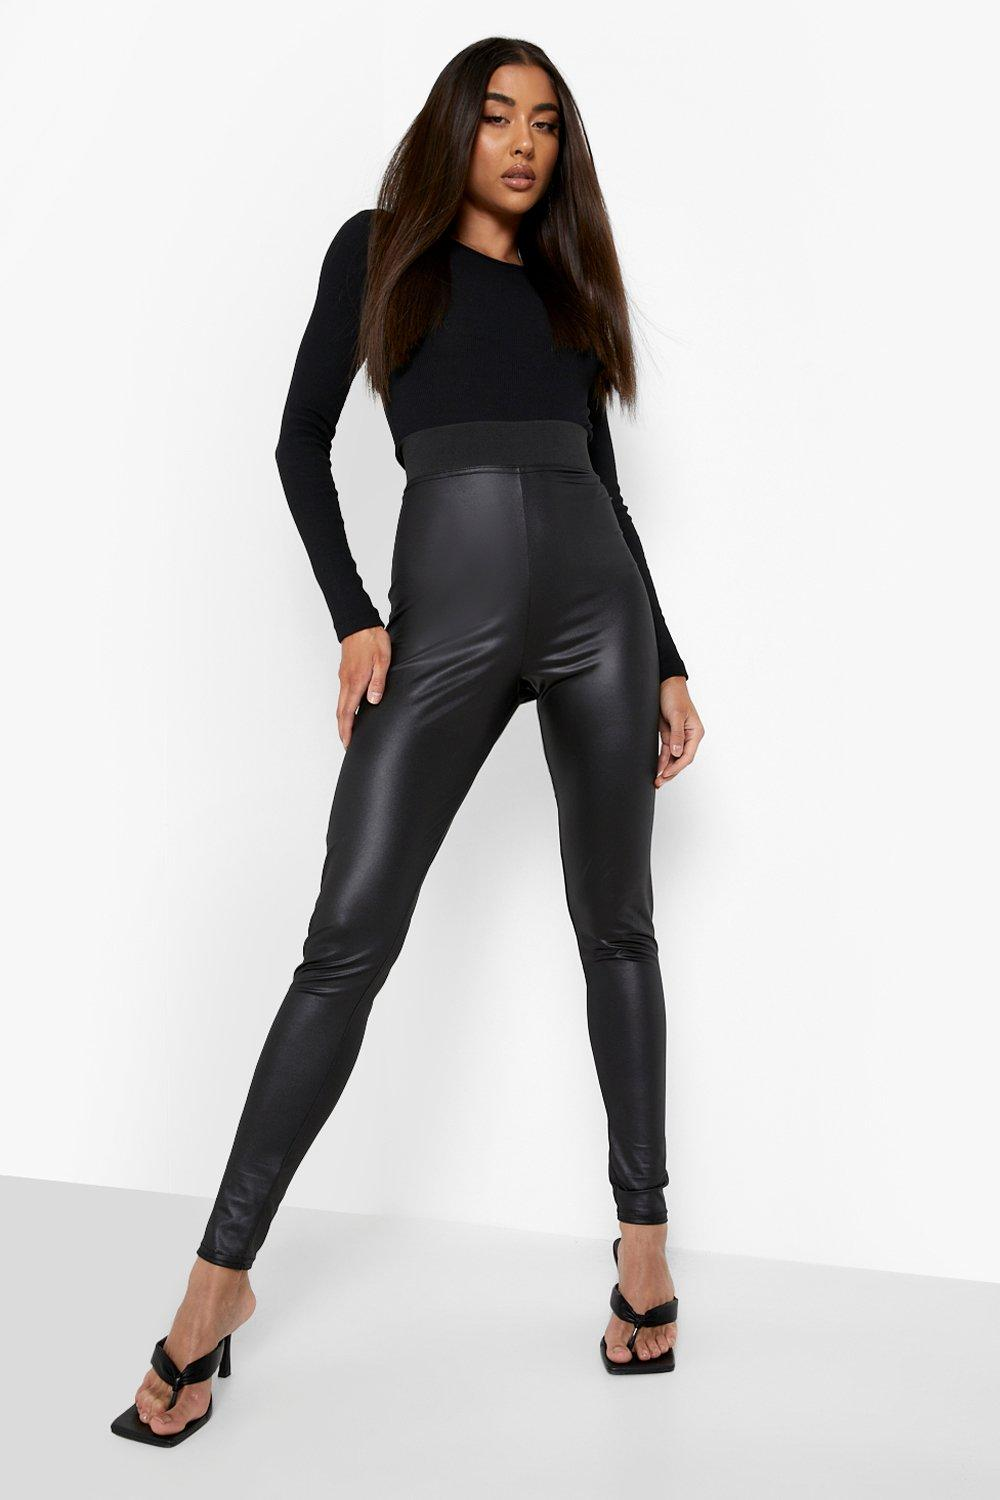 a40116bc8980d Womens Black Cropped High Waist Wet Look Leggings. Hover to zoom